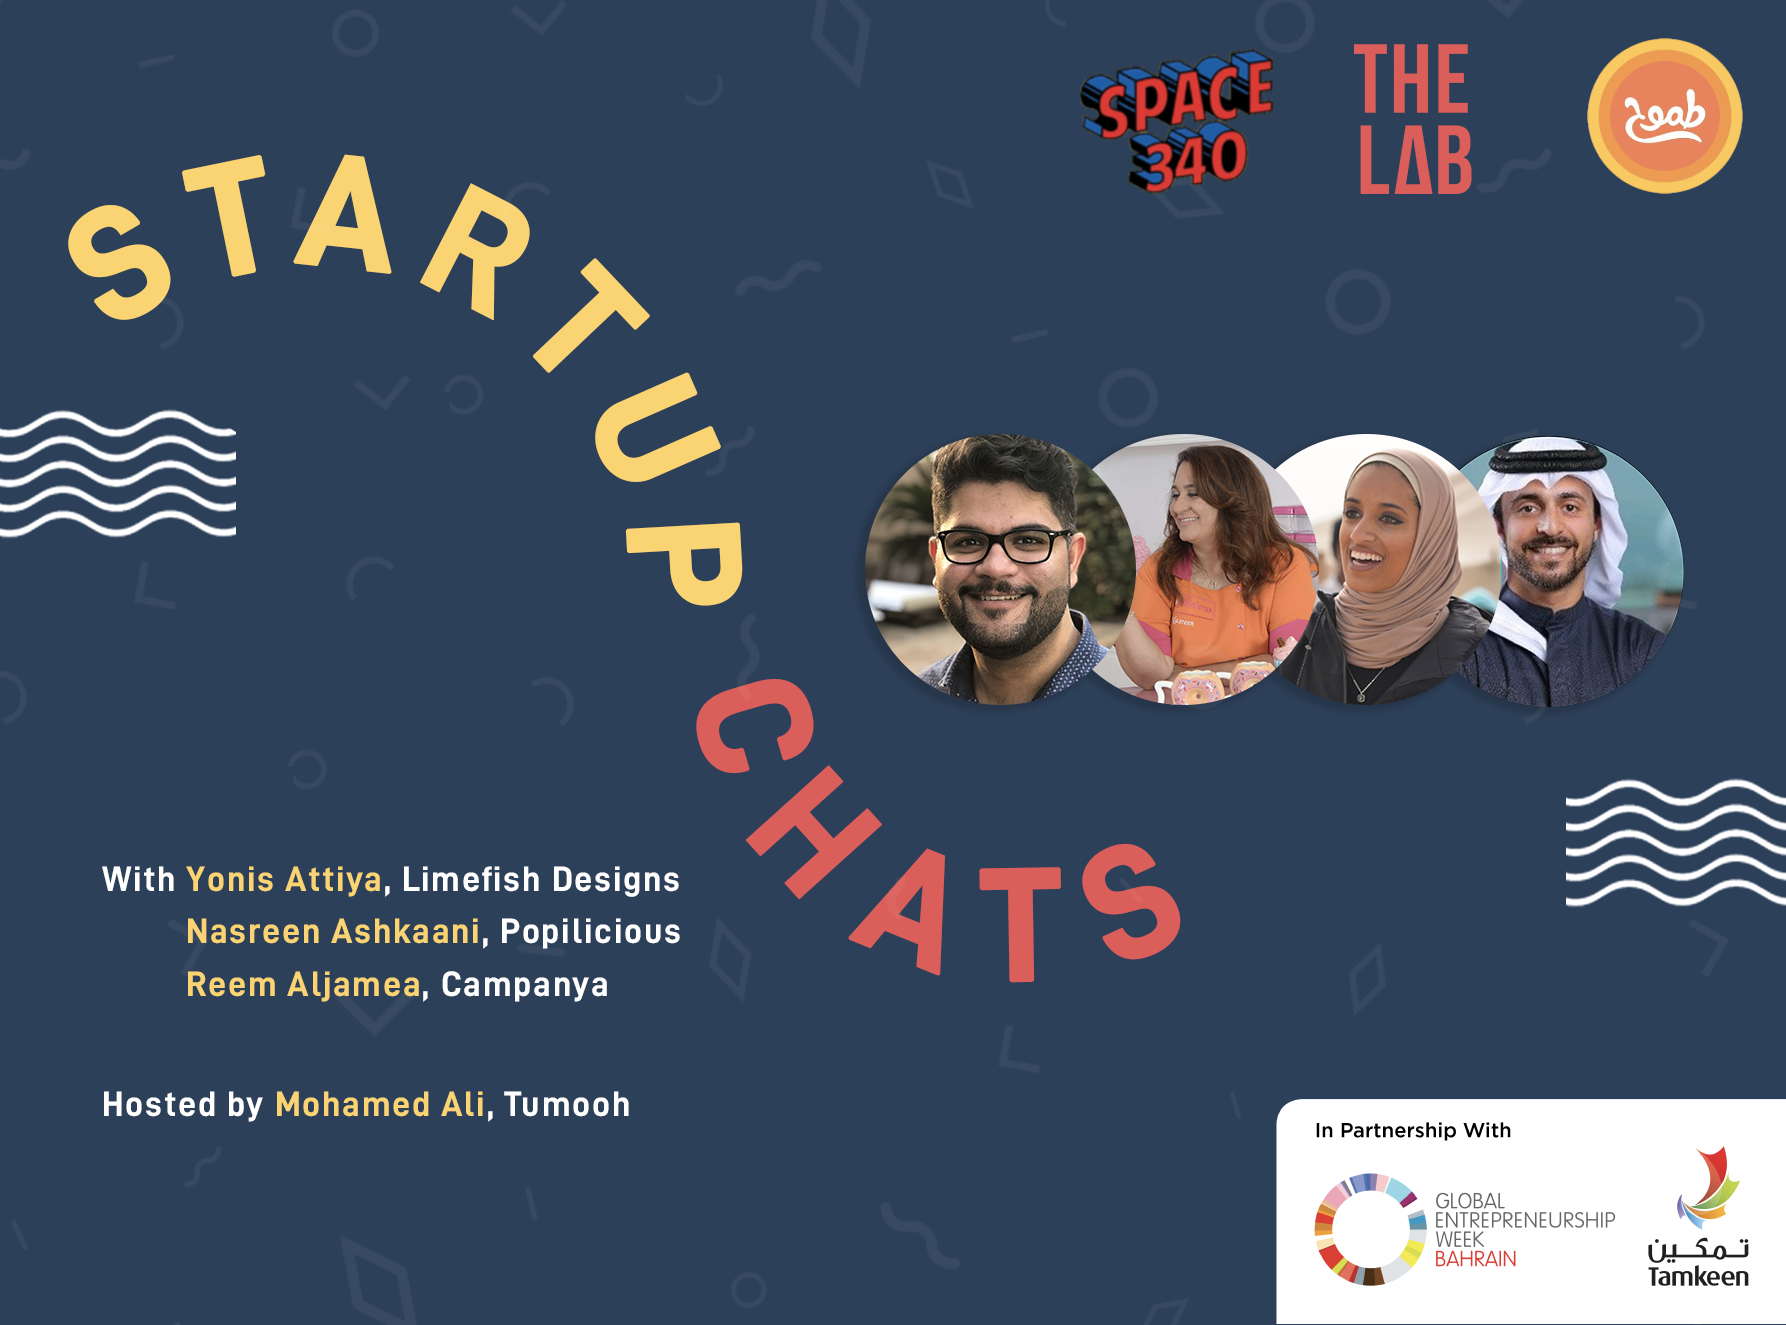 Startup Chats with Mohamed Ali